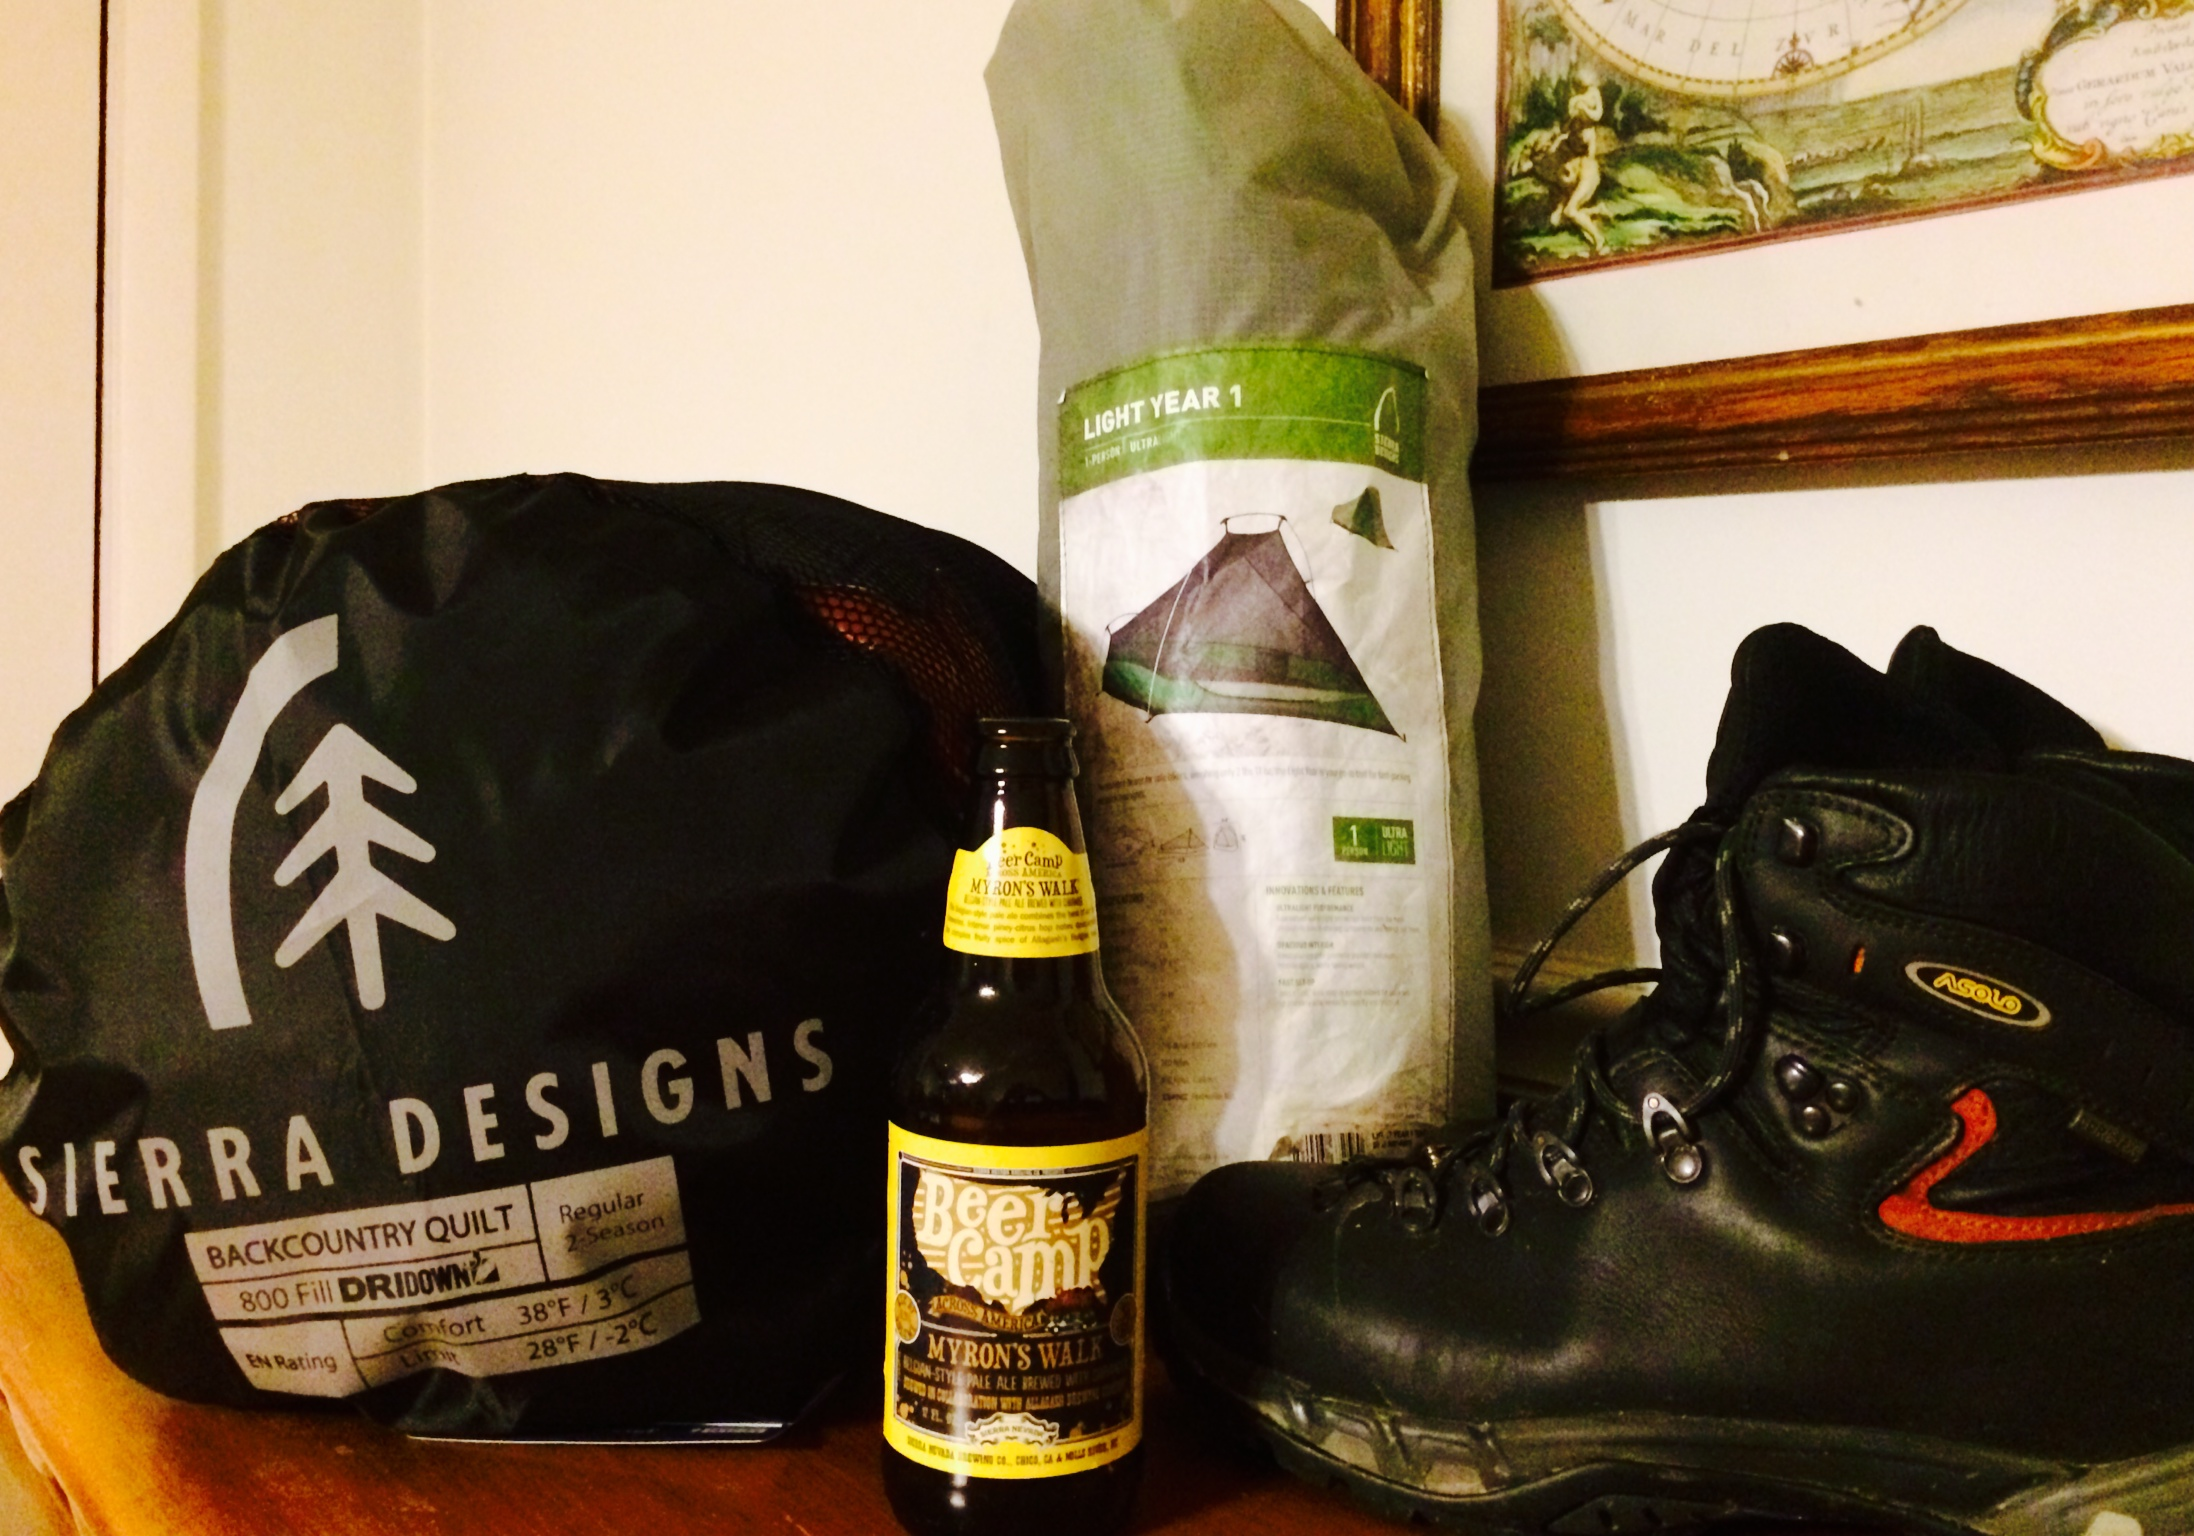 In honor of the thru hikers on the A.T., Sierra Designs Light Year 1 (which survived the 2012 derecho in the Cranberry backcountry and was a staple for thru hikers),  Sierra Designs new Backcountry Quilt, and Asolo hiking boots.